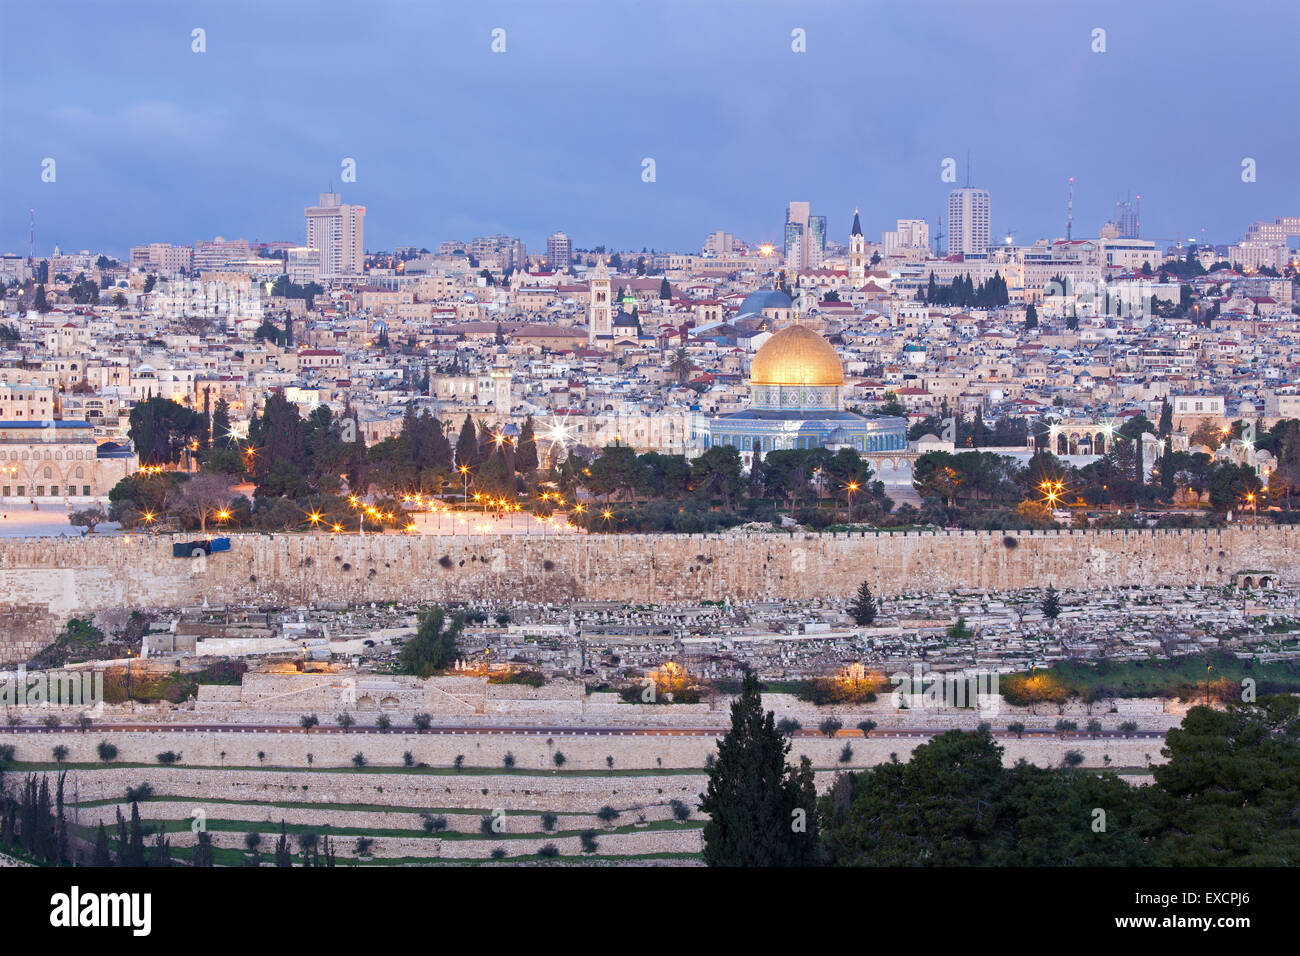 Jerusalem - Outlook from Mount of Olives to old city at dusk - Stock Image